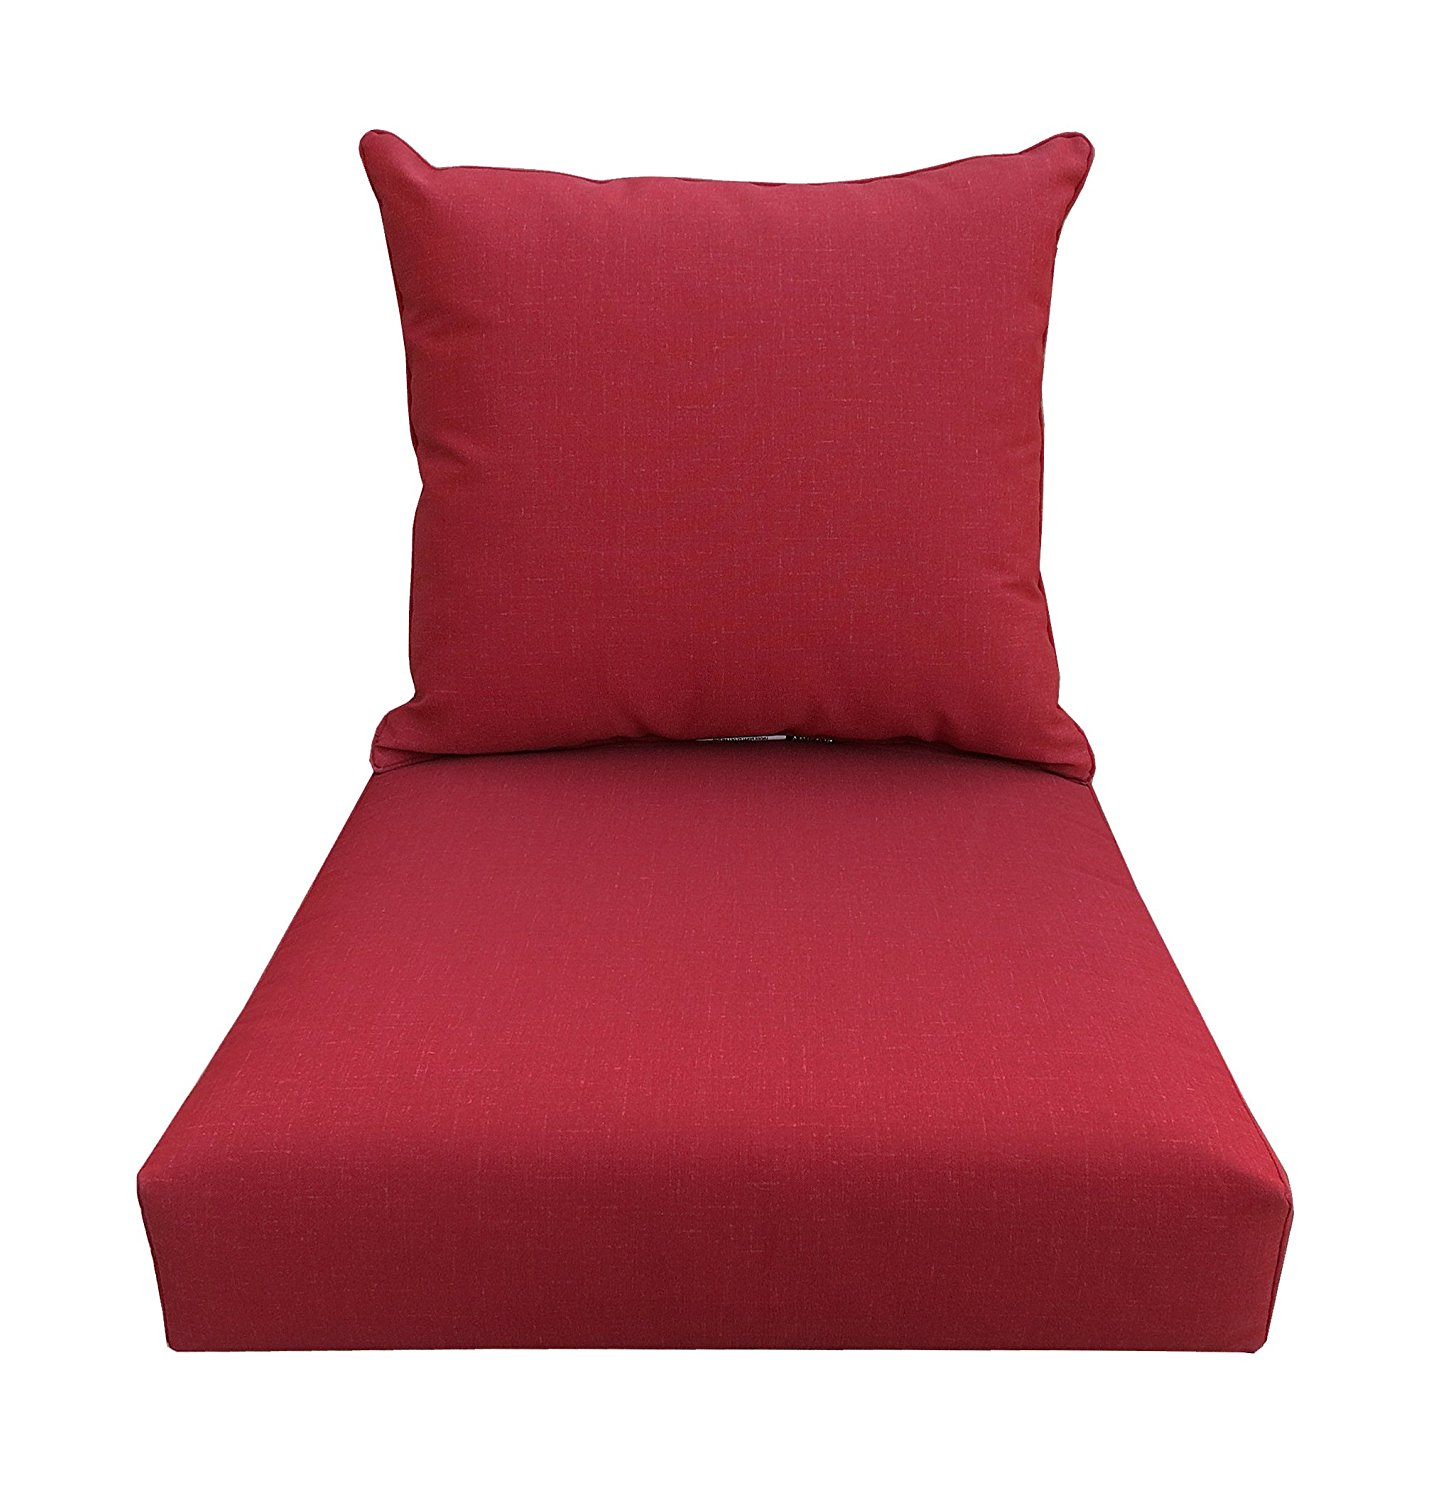 Deep Seating Replacement Cushions For Outdoor Furniture Toronto